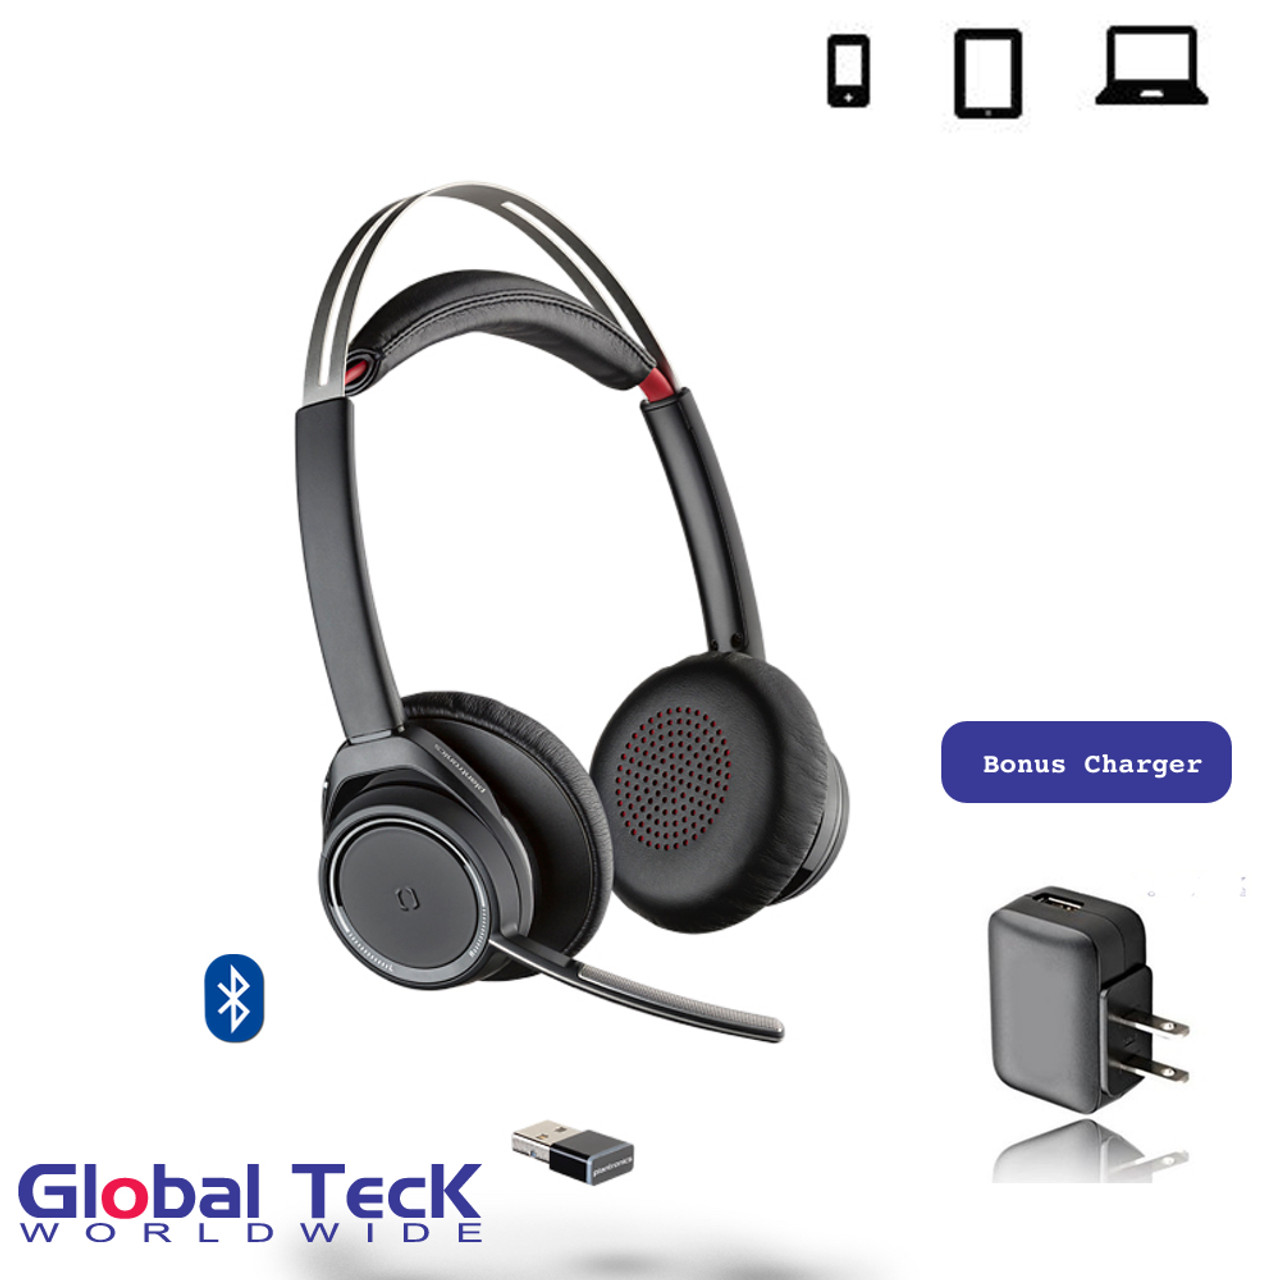 Plantronics Voyager 3200 Uc Bluetooth Headset Usb Dongle And Bonus Ac Charger 207371 01 B Grey Mobile Pc Mac Tablet Softphones Unified Communications